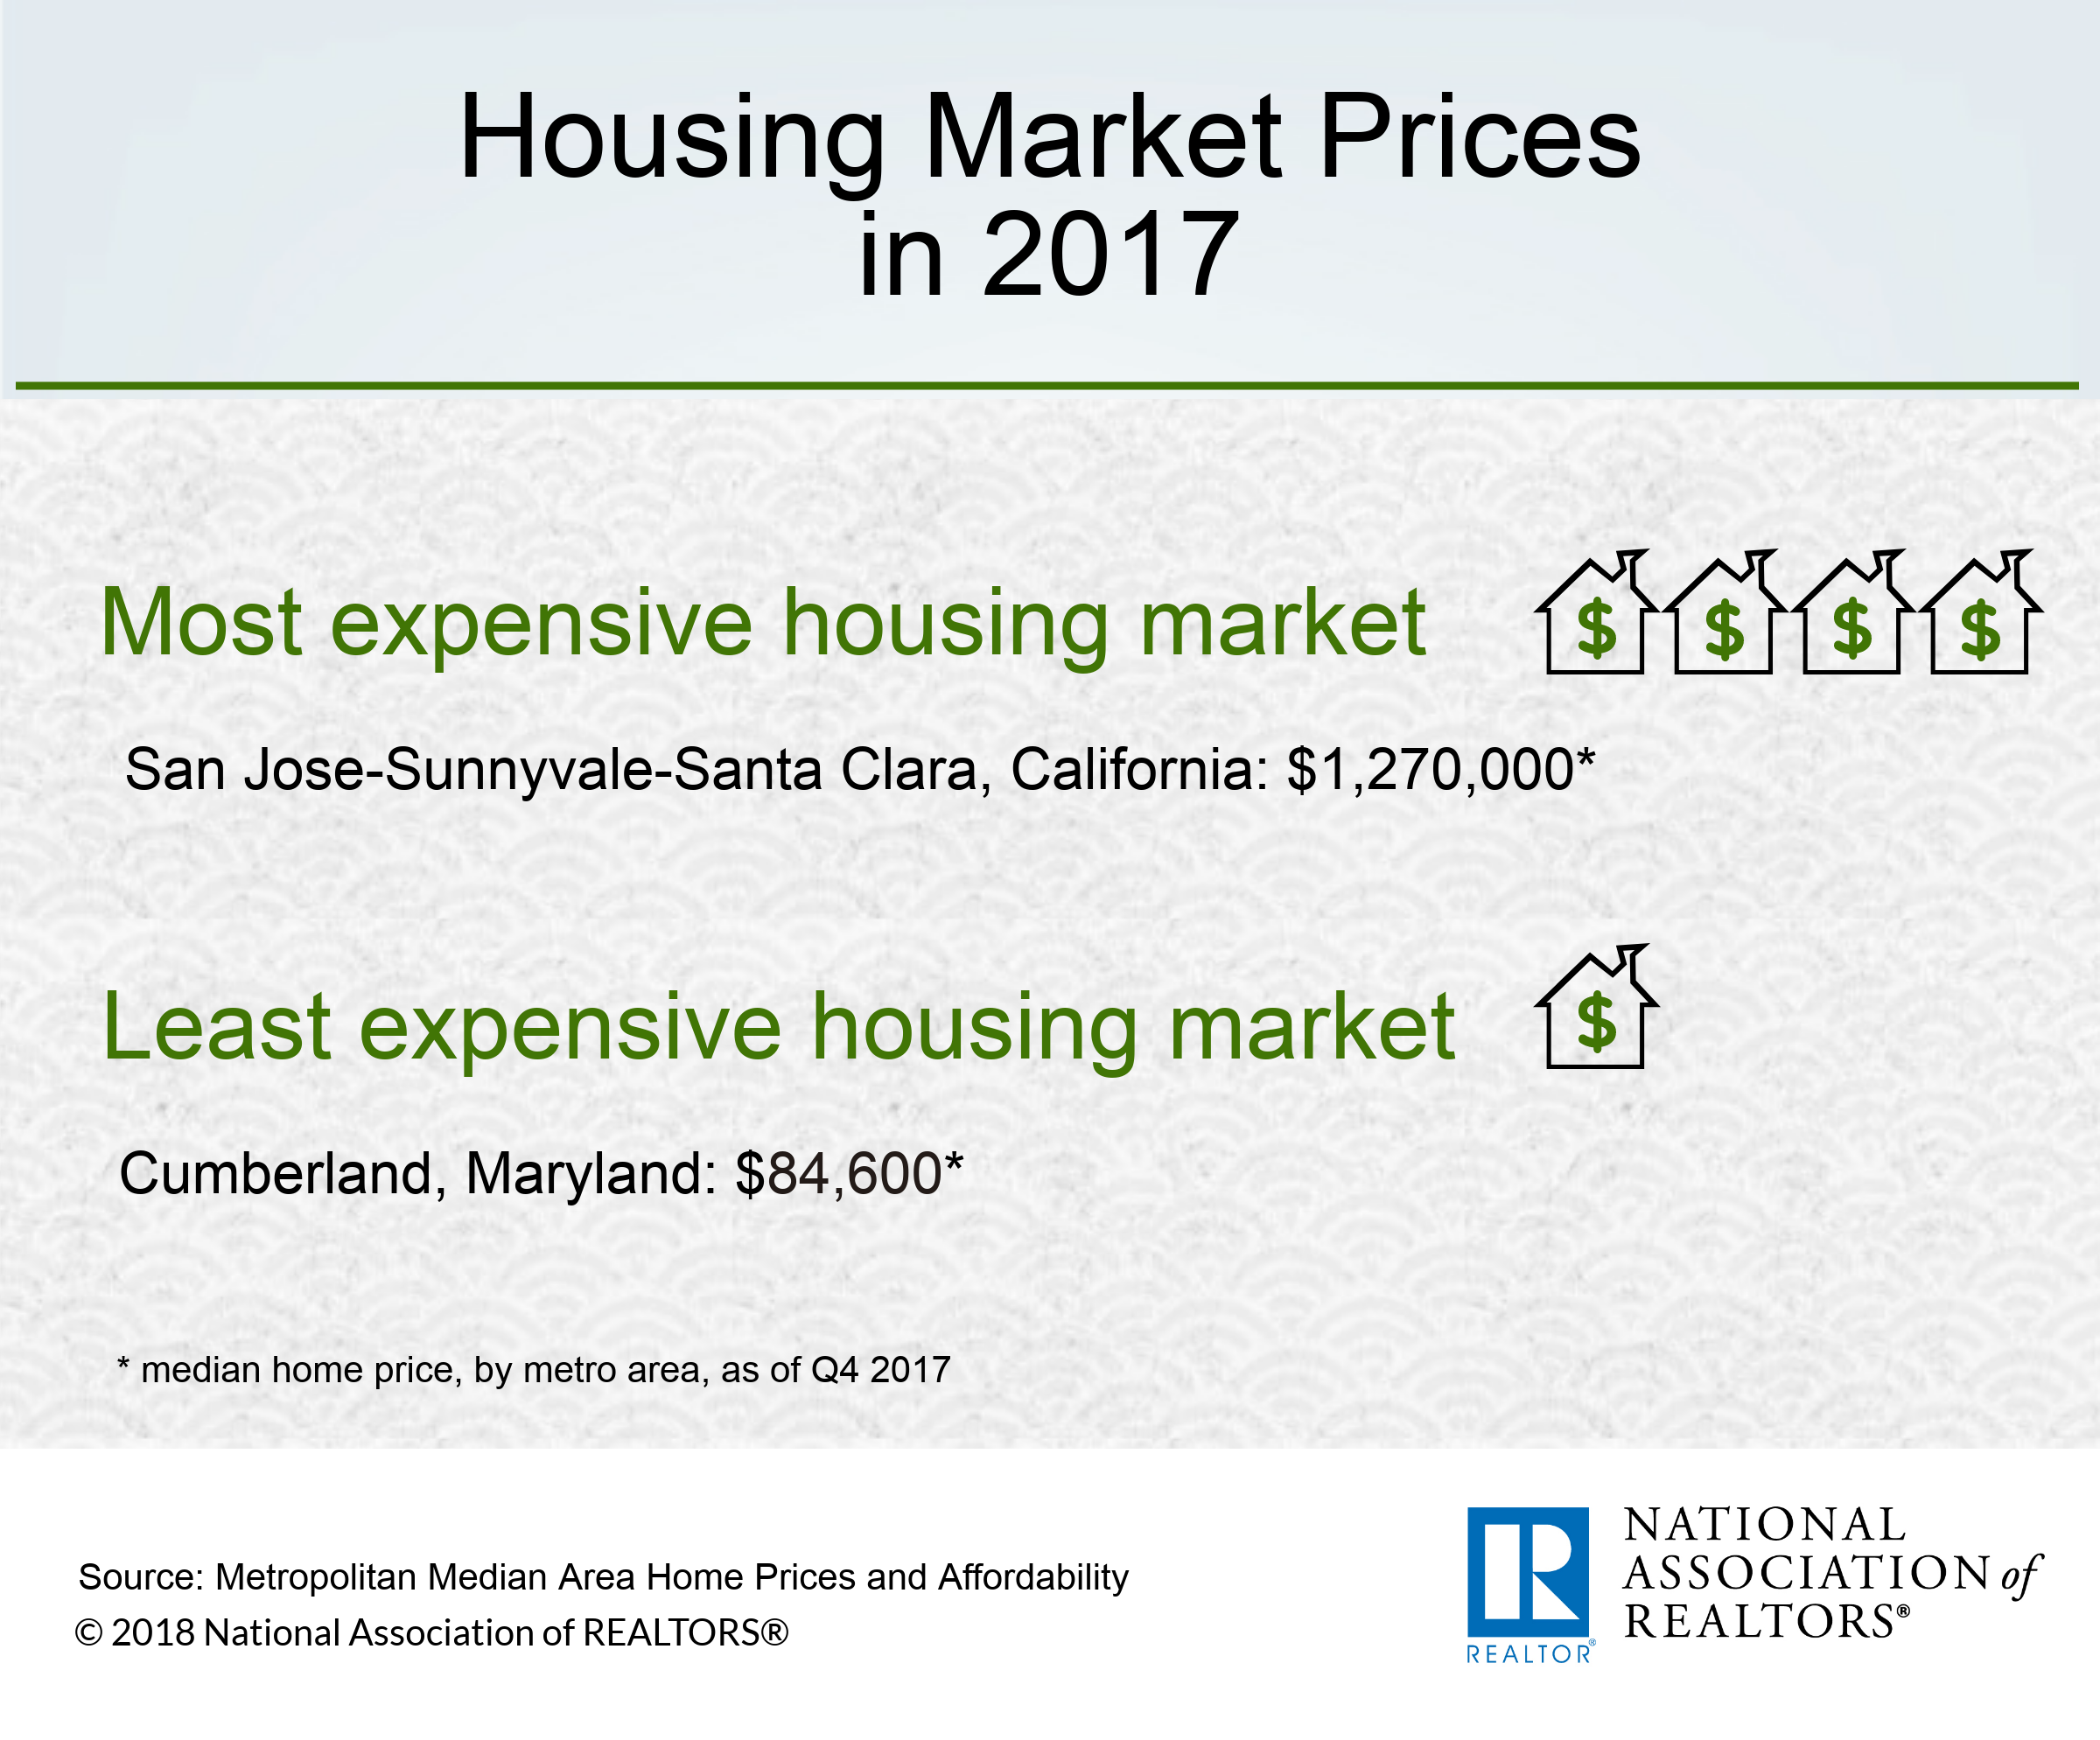 infographic housing market prices in 2017 www